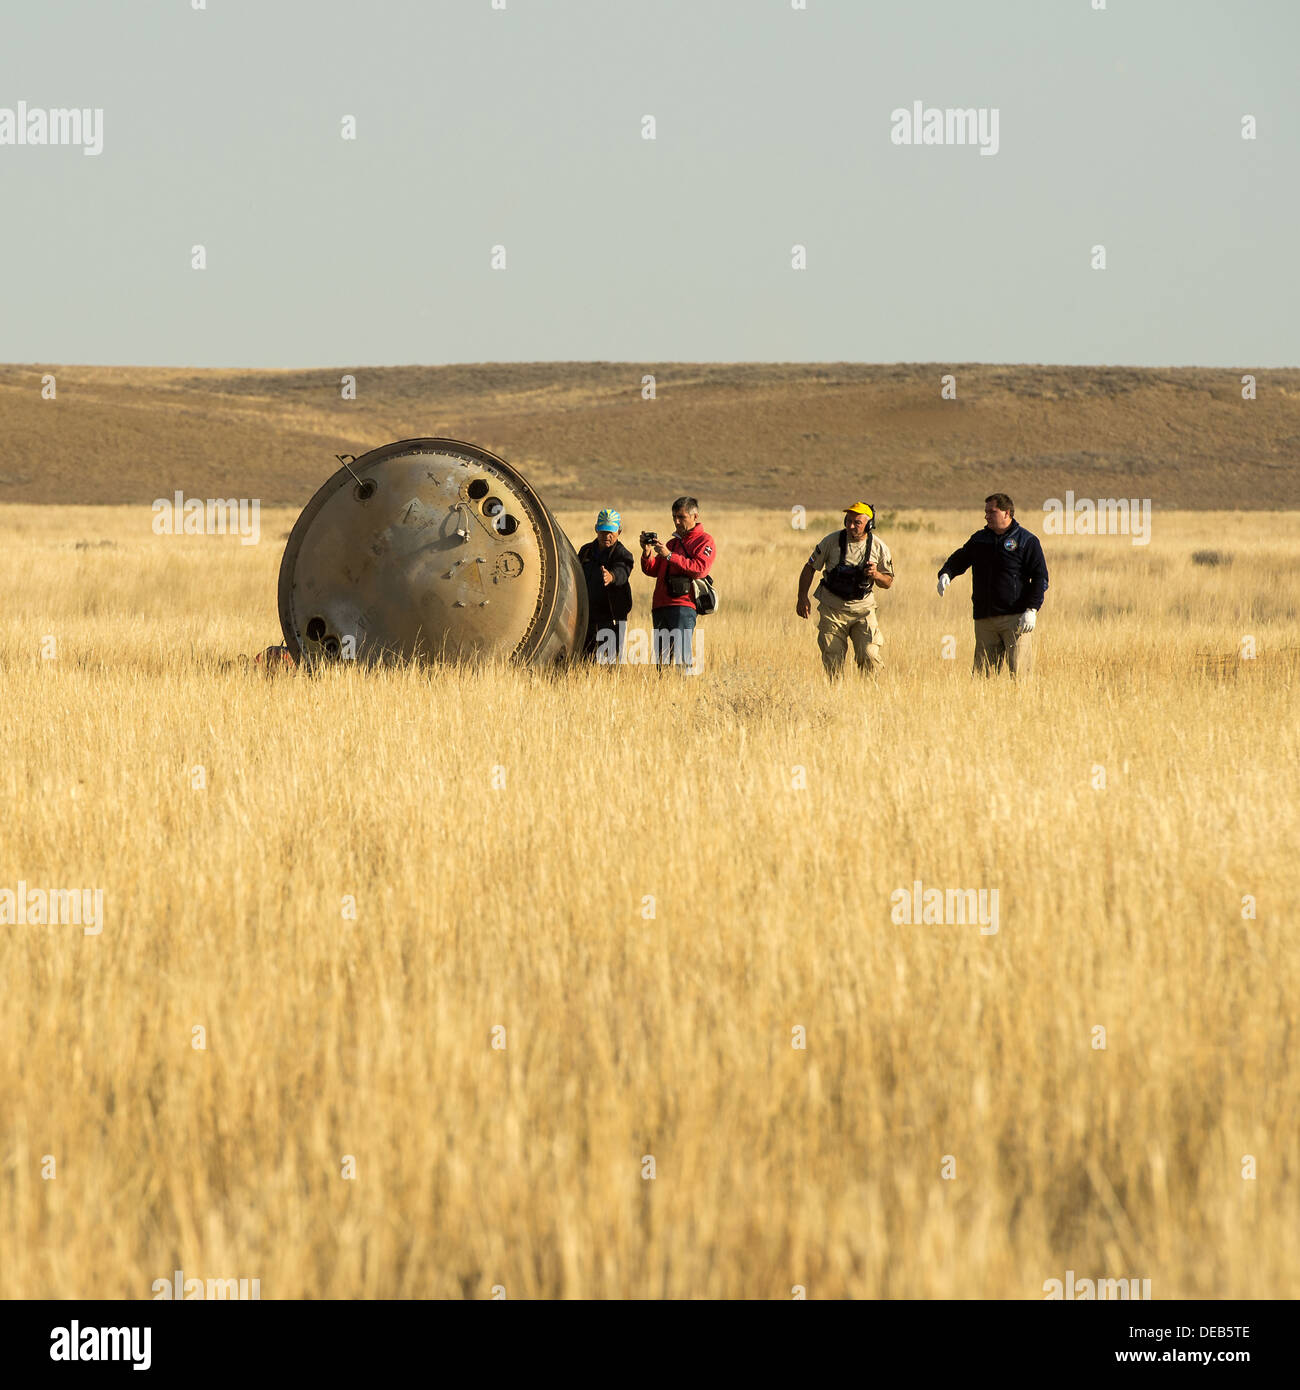 The Soyuz TMA-08M spacecraft after landing with Expedition 36 crew in a remote area September 11, 2013 near the town of Zhezkazgan, Kazakhstan. Vinogradov, Misurkin and Cassidy returned to Earth after five and a half months on the International Space Station. - Stock Image